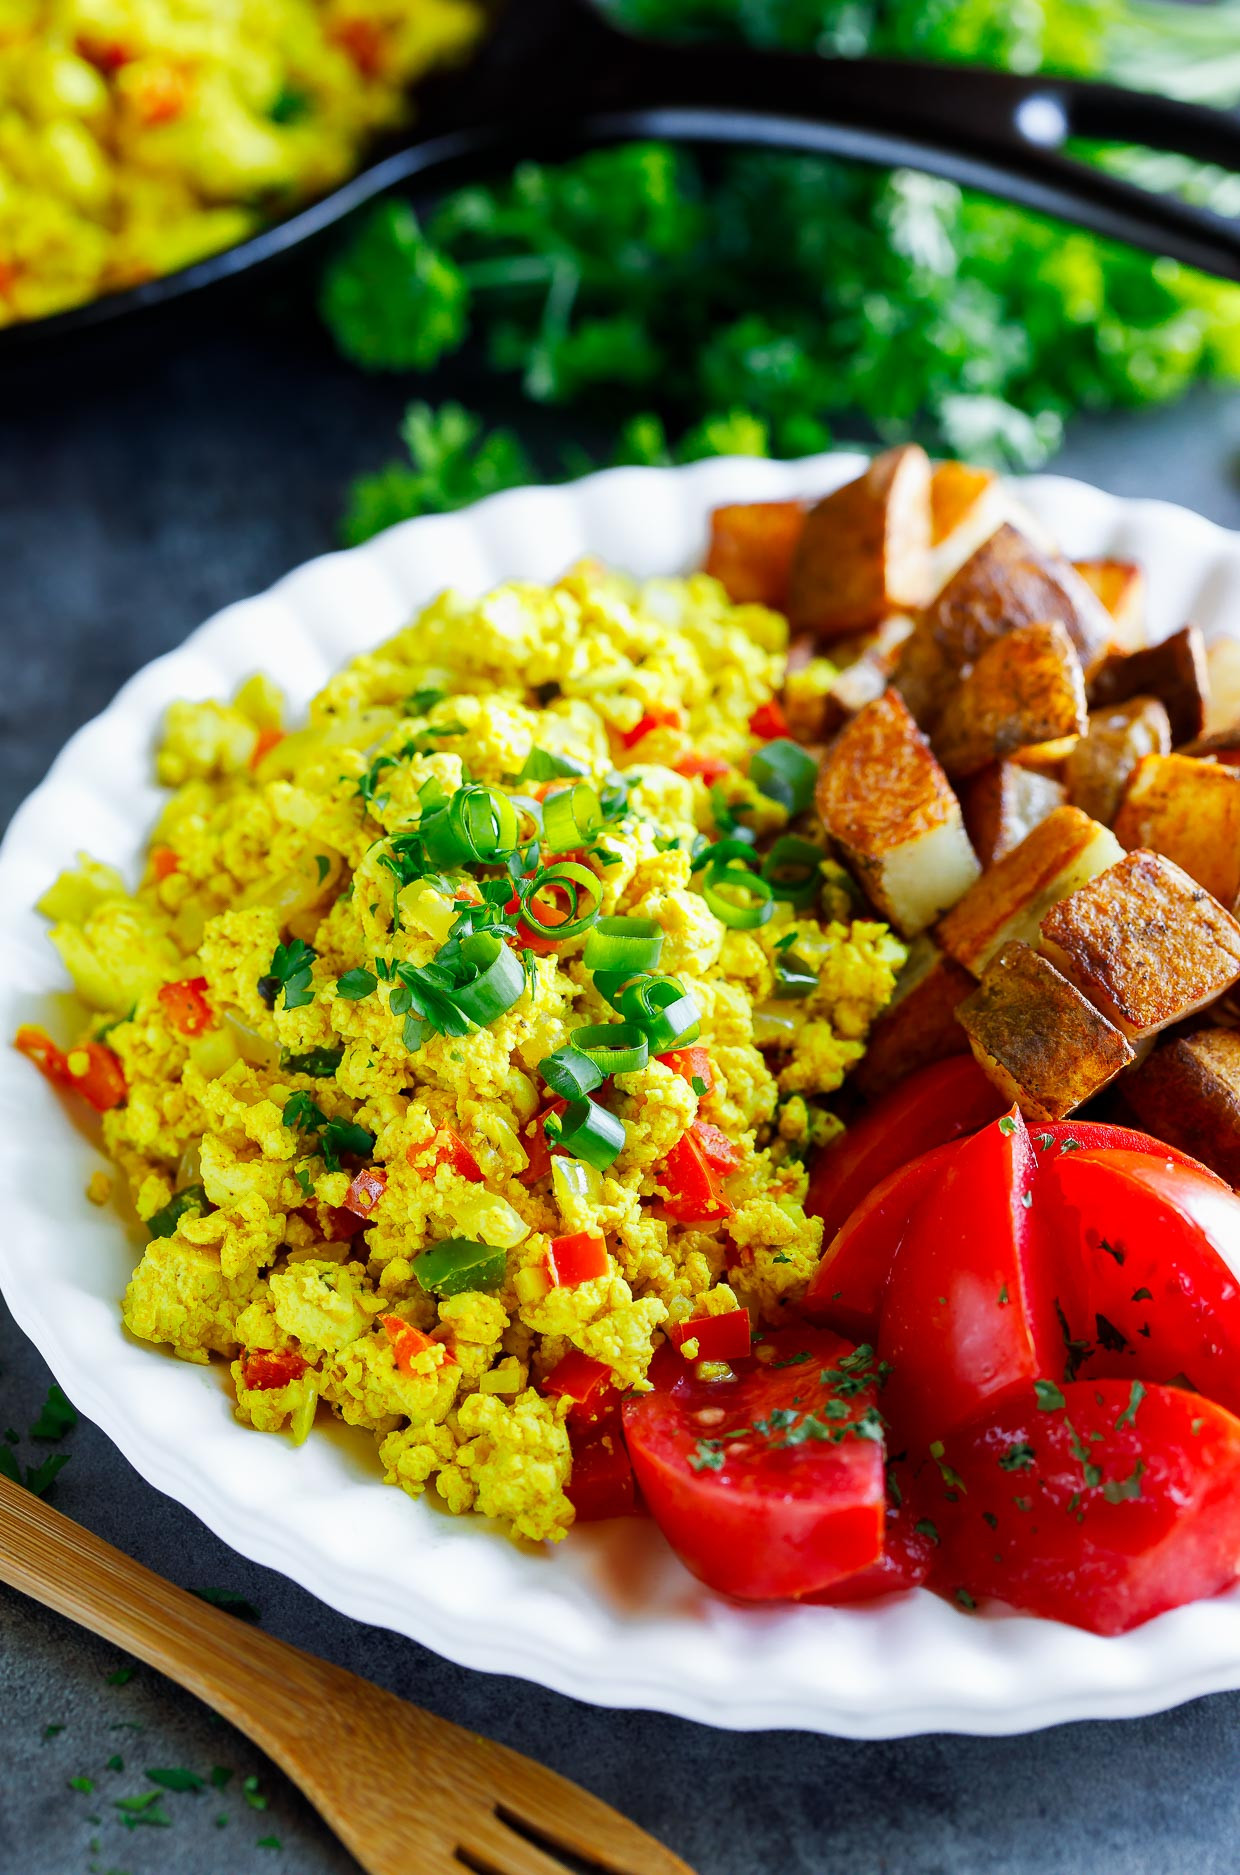 Healthy Breakfast Scramble  Garden Veggie Tofu Scramble Tasty Vegan Breakfast Recipe